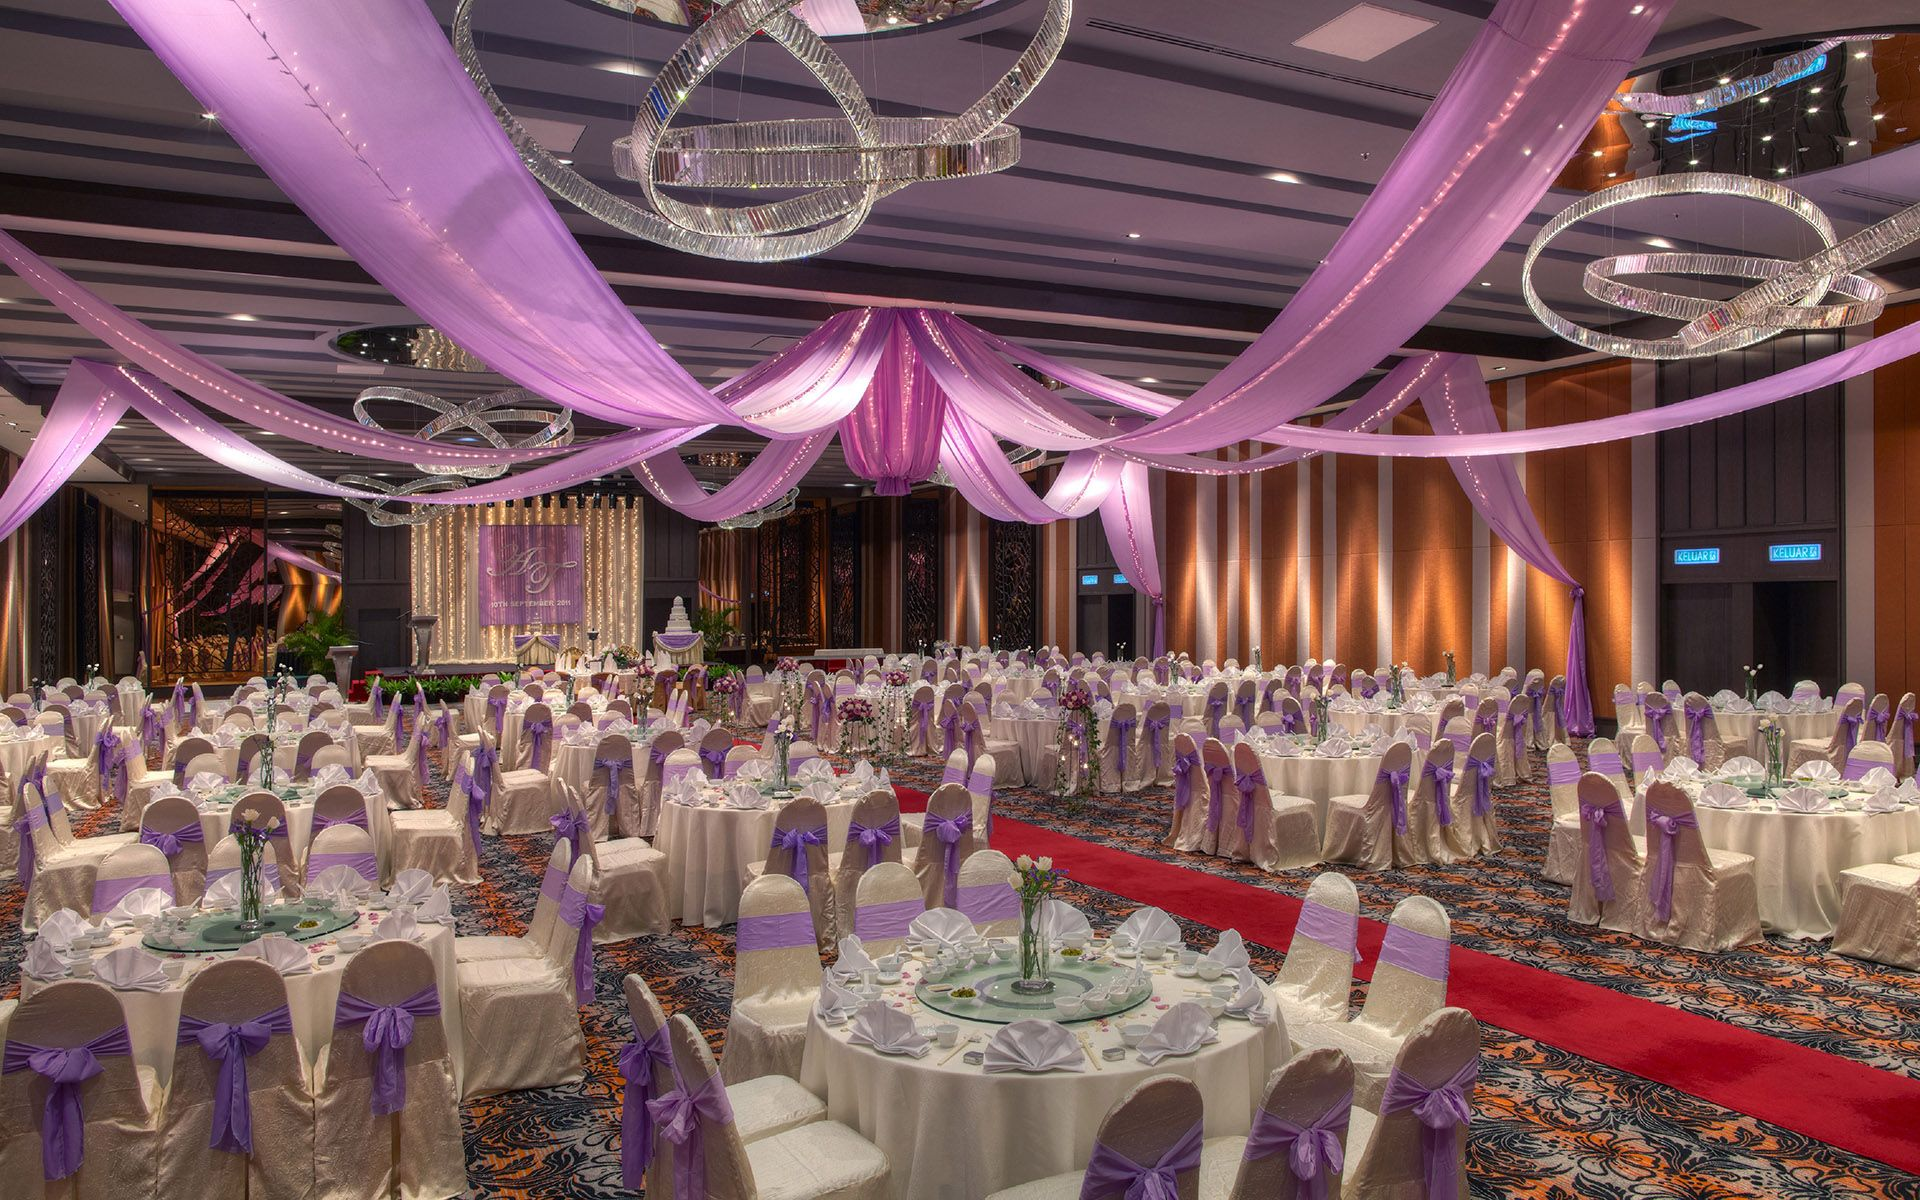 Share Your Proposal Story & Win A Dream Wedding Opportunity At Hilton Malaysia